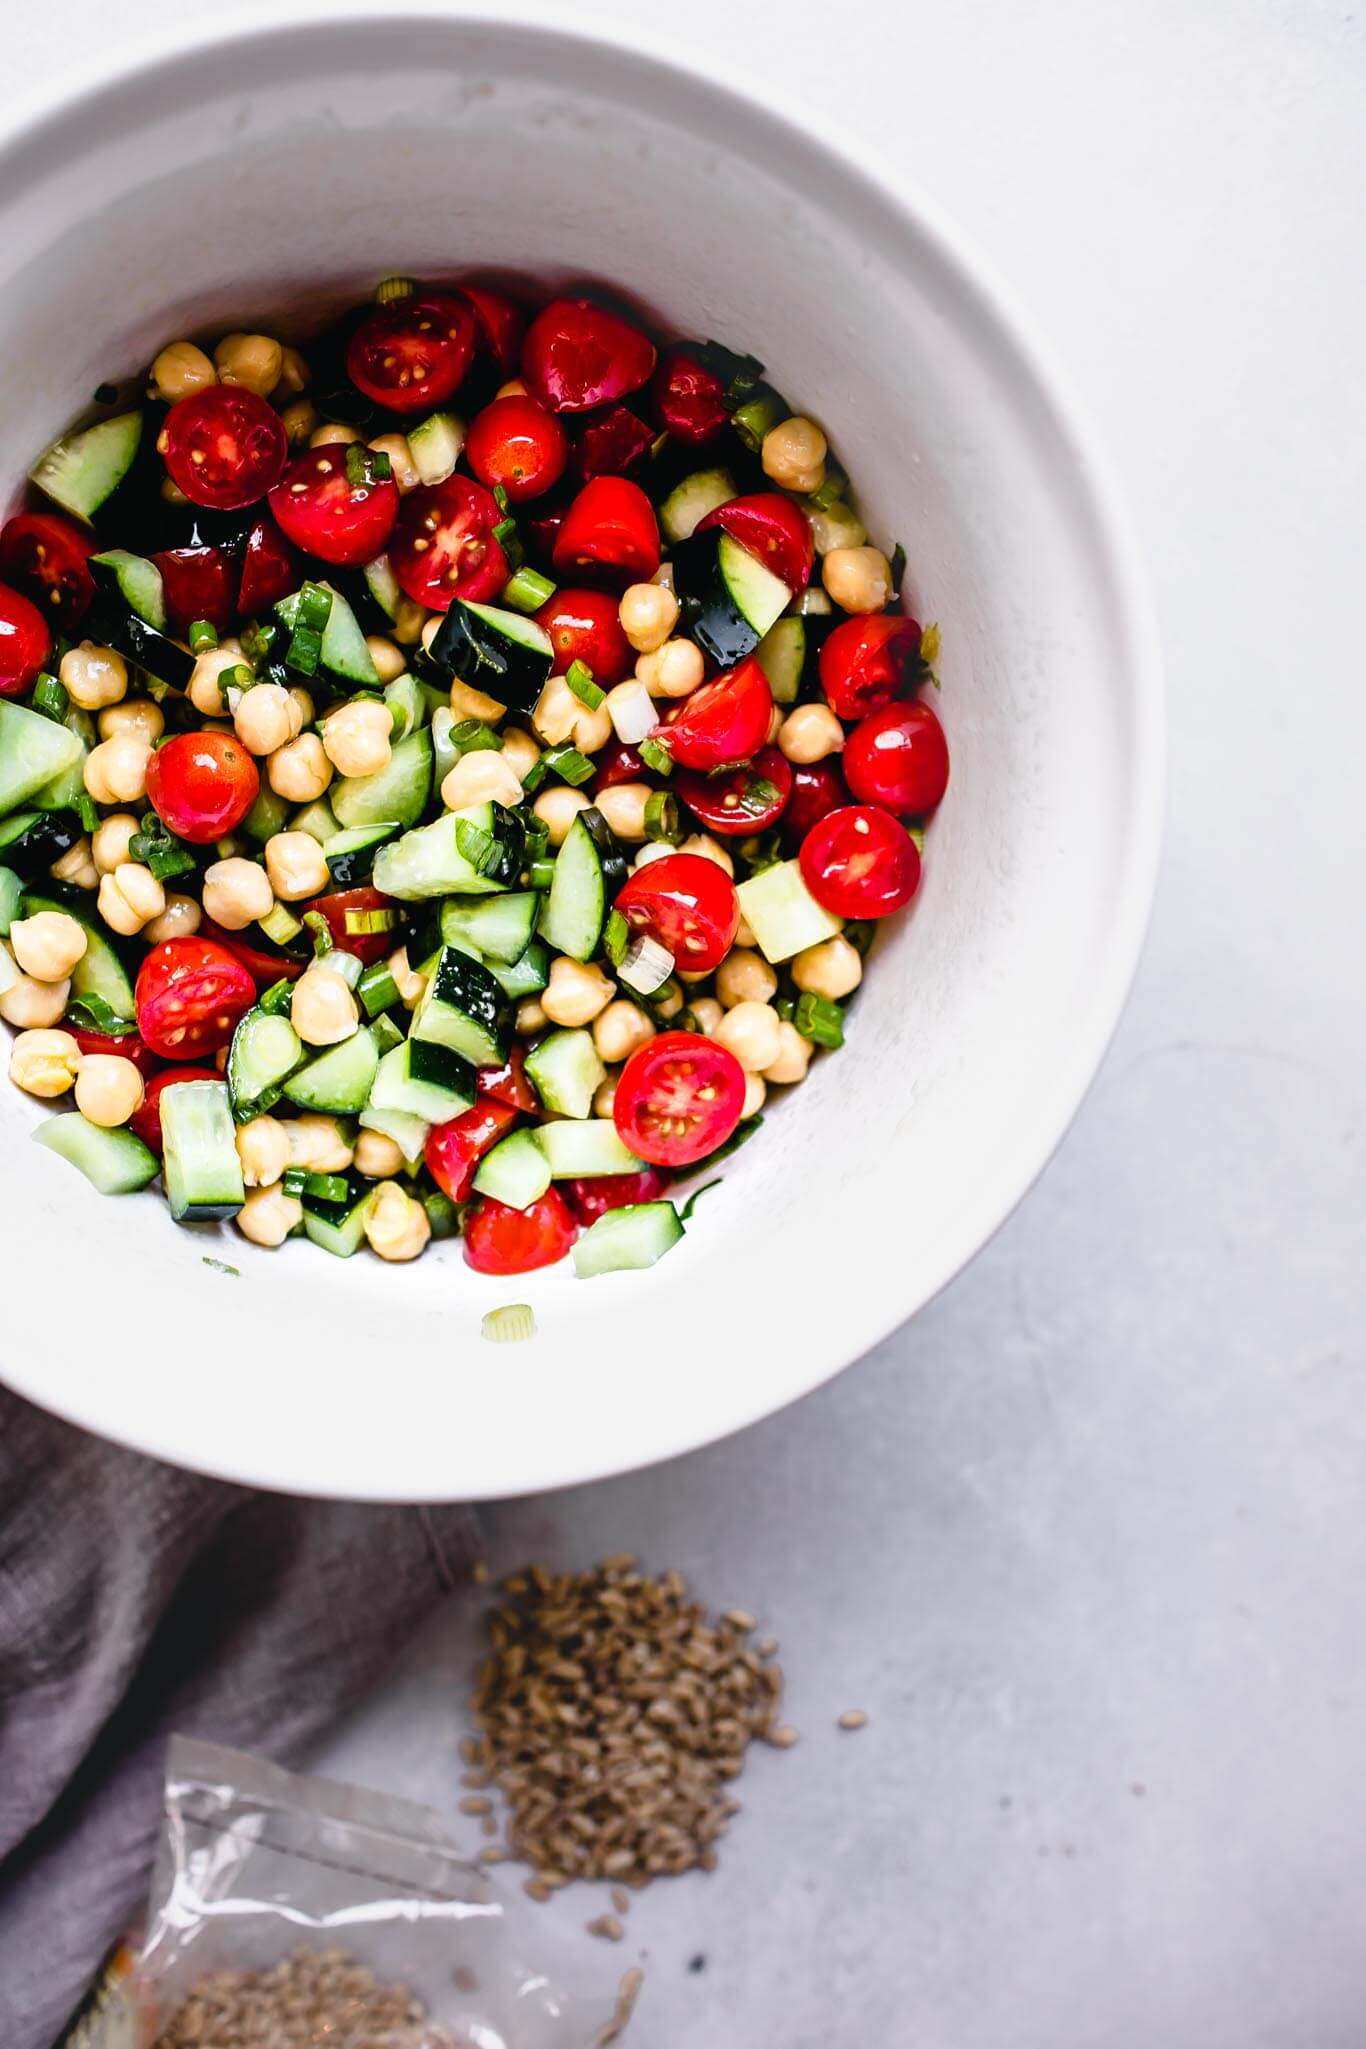 Tomatoes, chickpeas and cucumber in white mixing bowl.